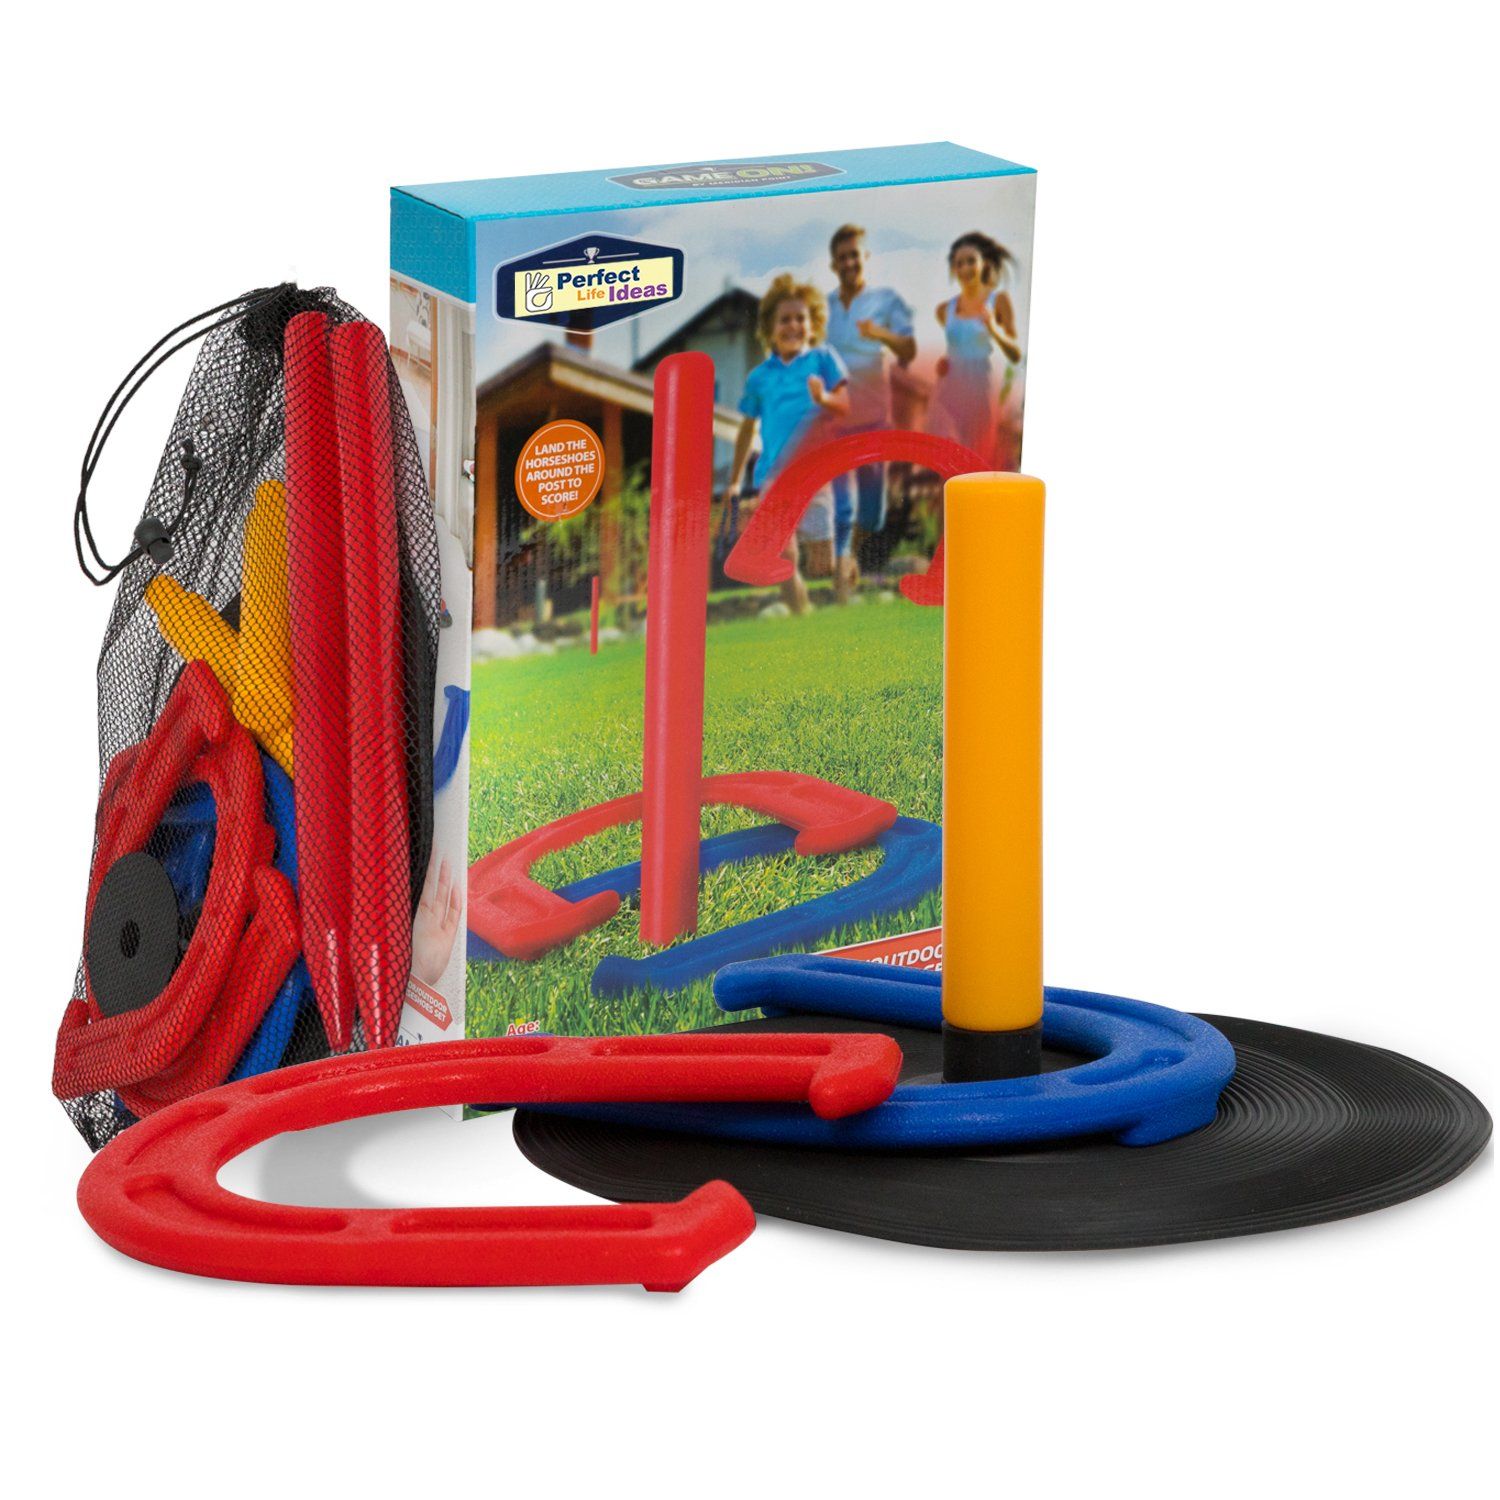 Horseshoes Game as Outdoor Games for Family - Horseshoe Set Best Yard Camping Lawn Beach Games Perfect for Adults, Kids or Seniors by Perfect Life Ideas